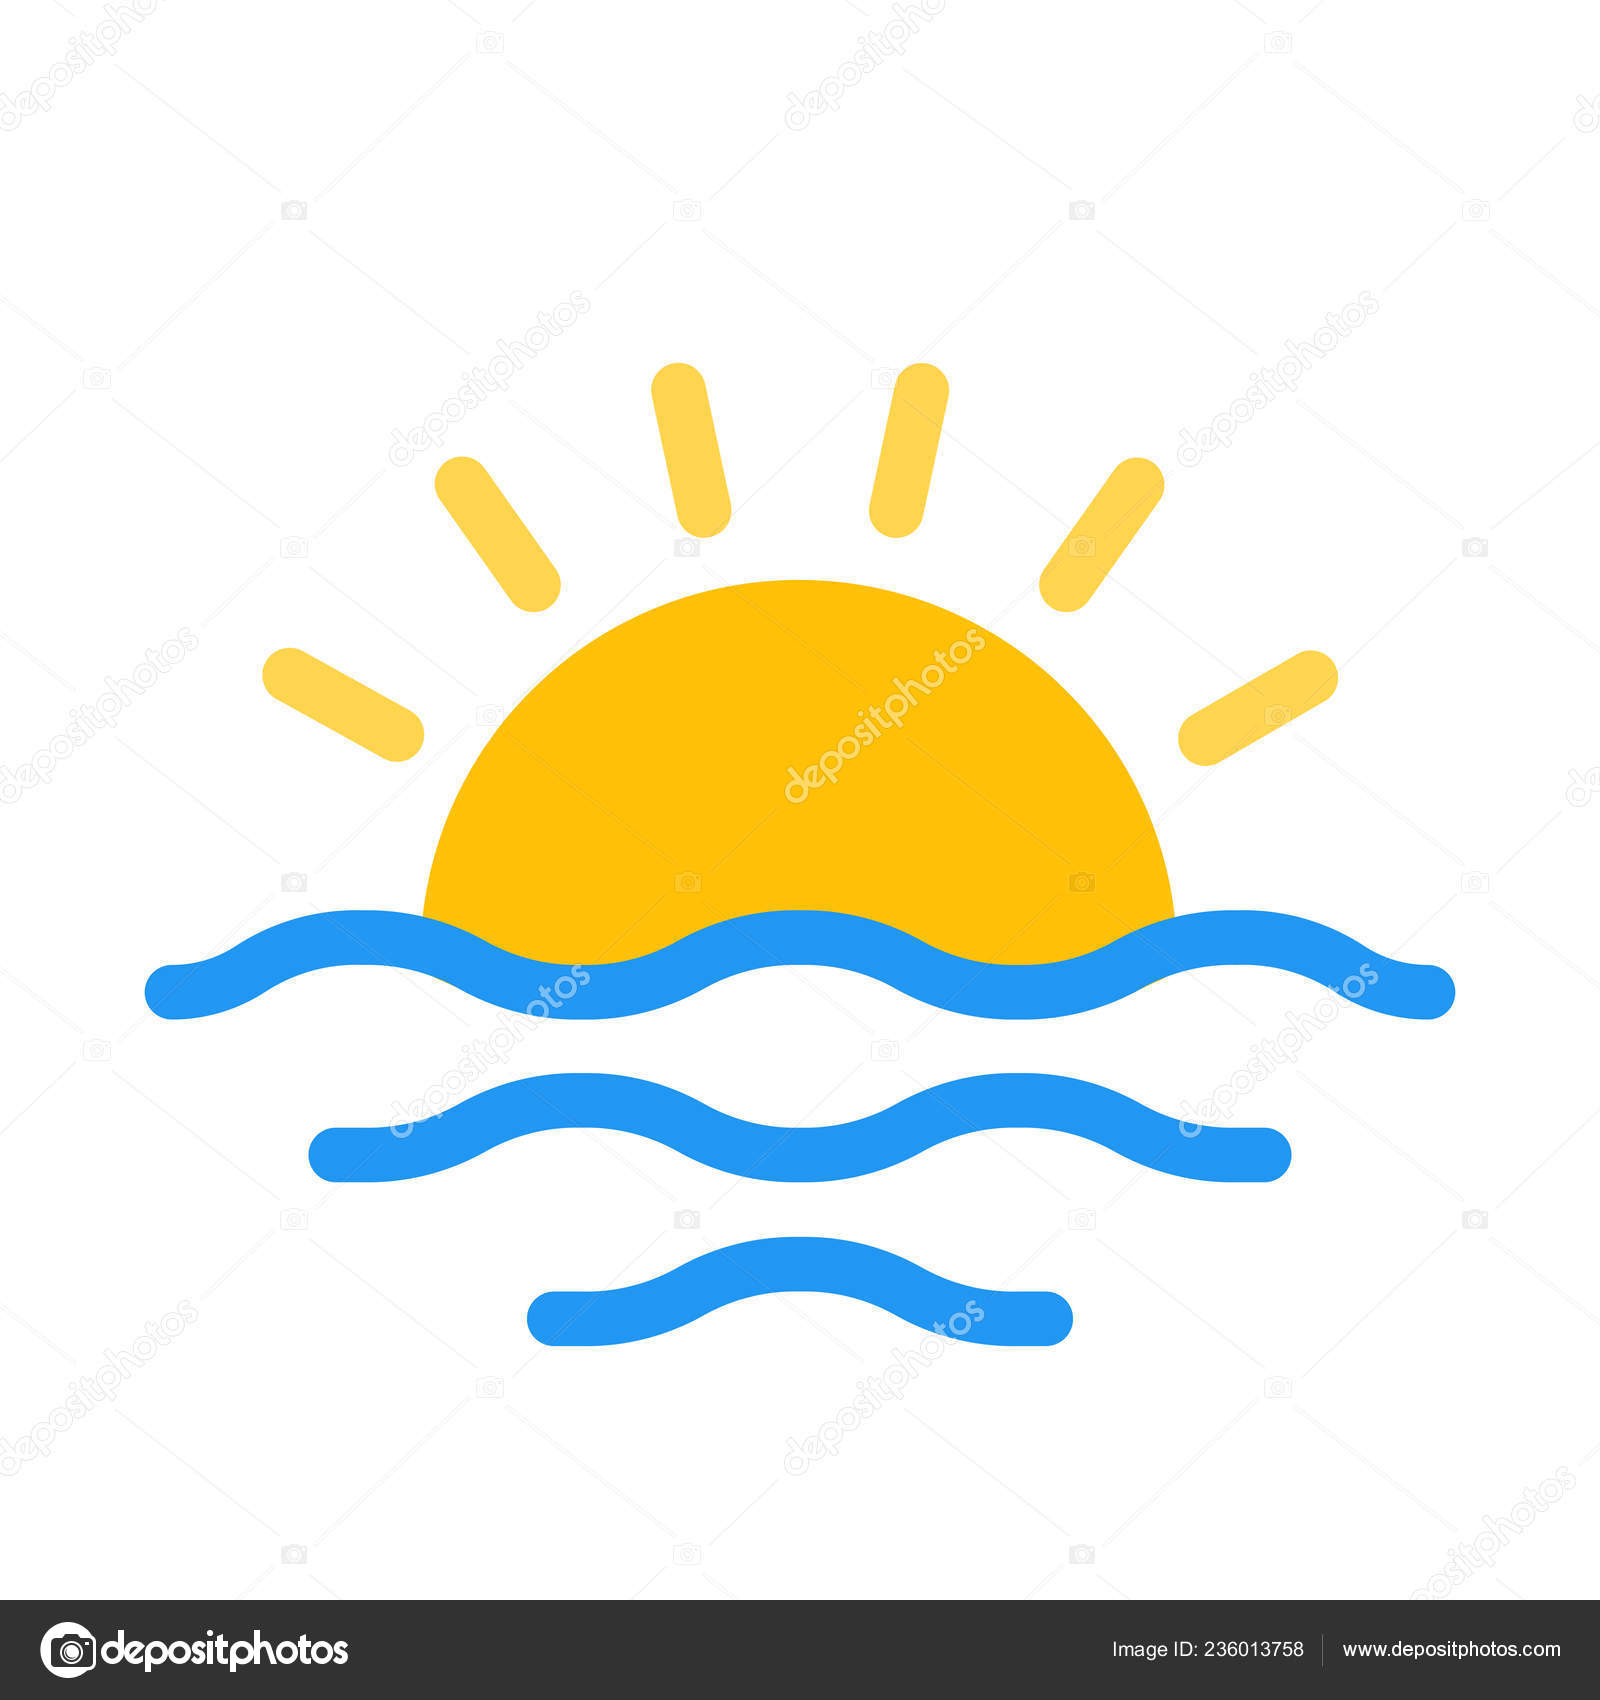 sunset icon simple vector illustration stock vector c get4net 236013758 https depositphotos com 236013758 stock illustration sunset icon simple vector illustration html